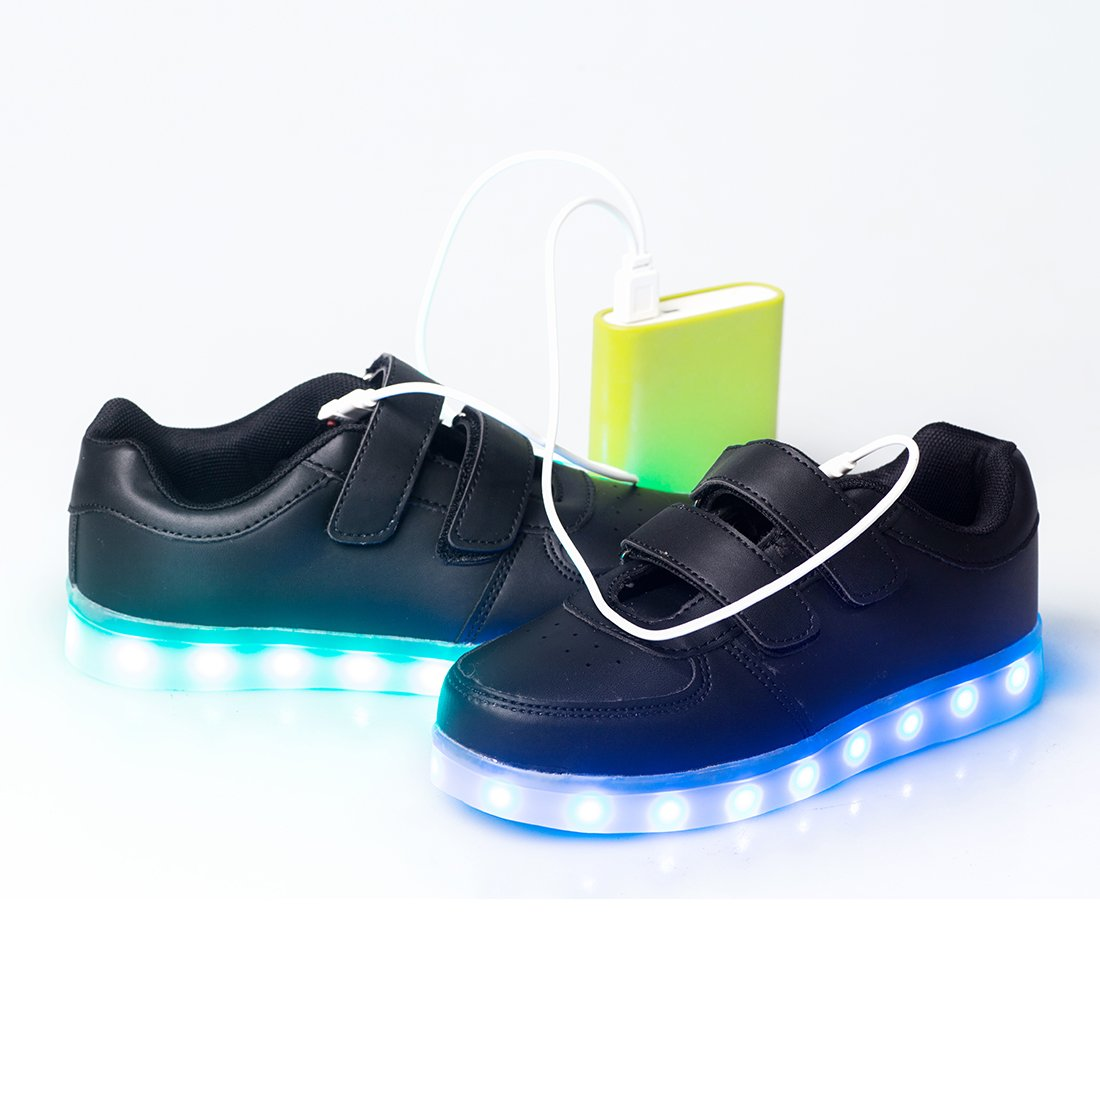 Lapens LED Light Up Shoes Rechargeable USB Flashing Fashion Sneakers for Kids Boys Girls